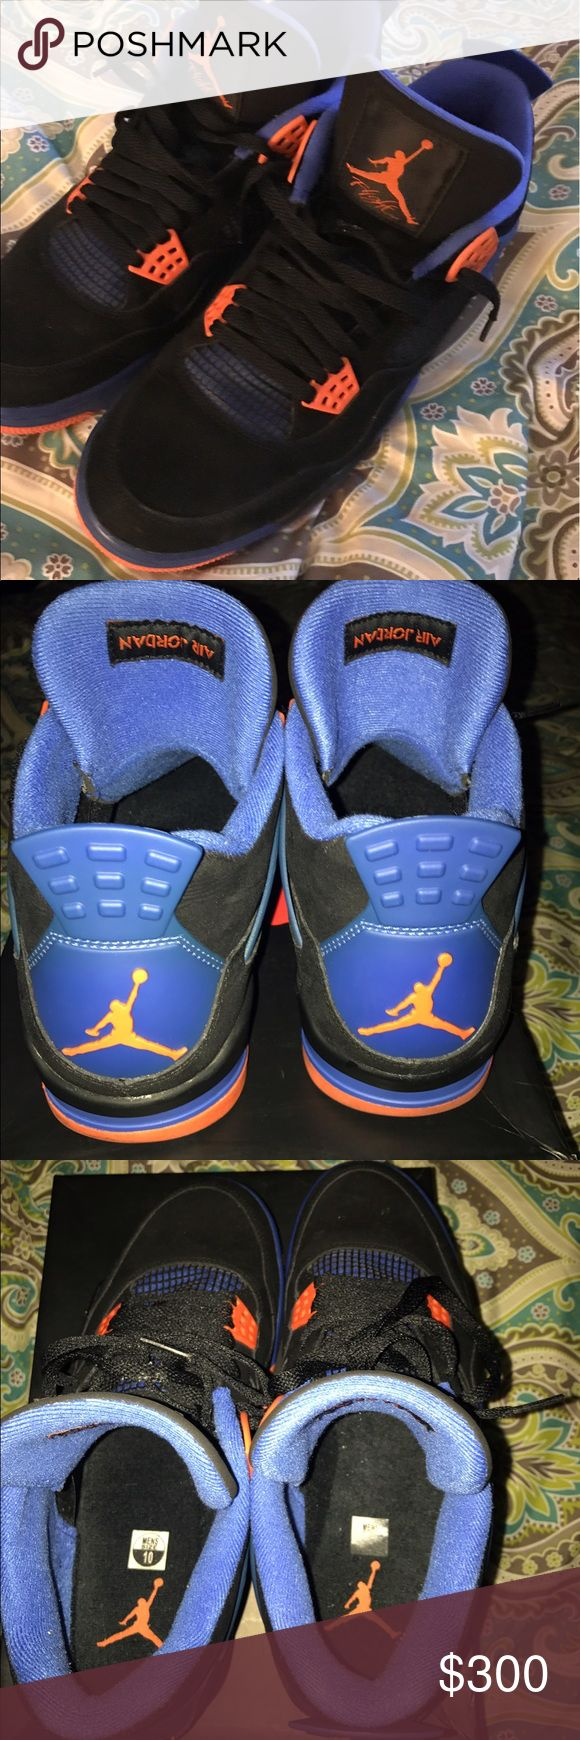 Air Jordan retro 4 caves size 10 These are super fresh on carpet 1 time dead stock 2012 retro 4 caves nicks size ten with box Jordan Shoes Athletic Shoes